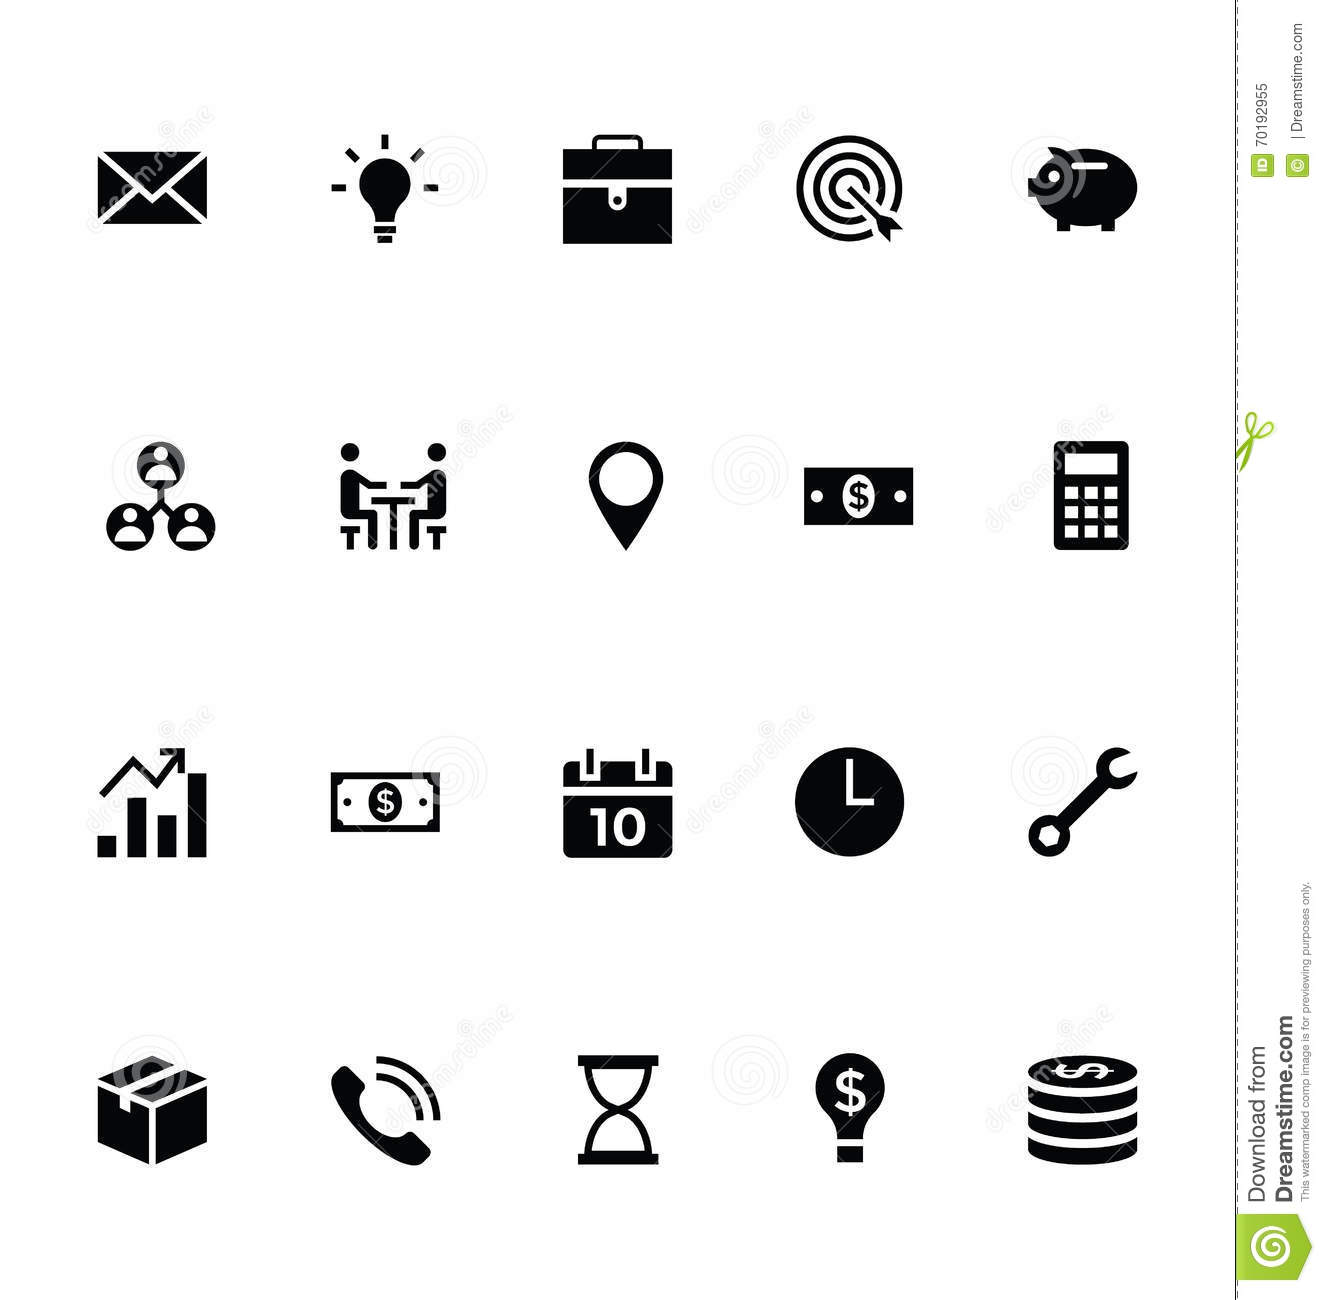 Forex vector icon